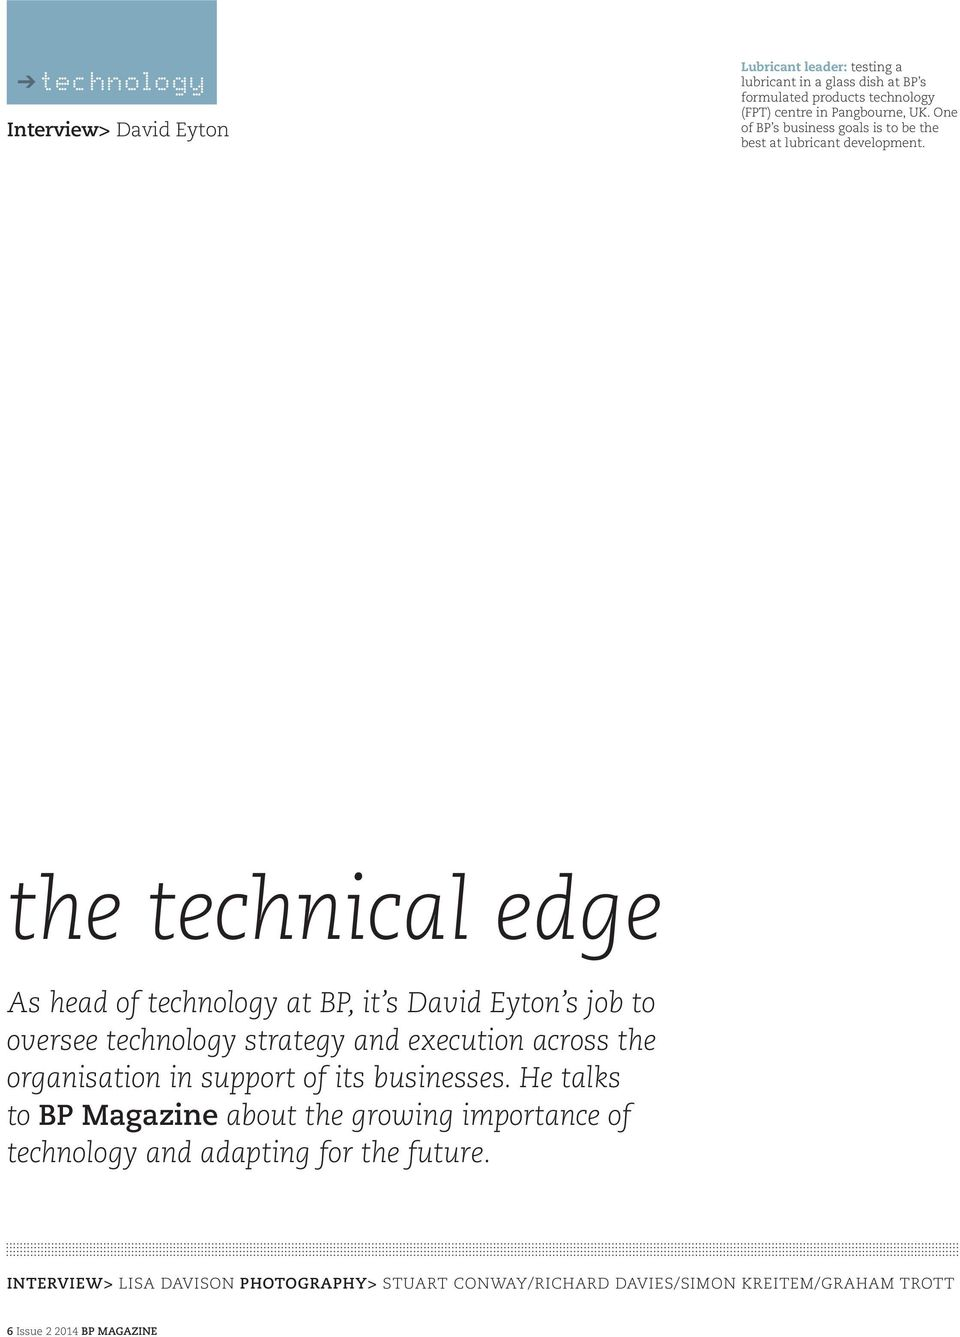 the technical edge As head of technology at BP, it s David Eyton s job to oversee technology strategy and execution across the organisation in support of